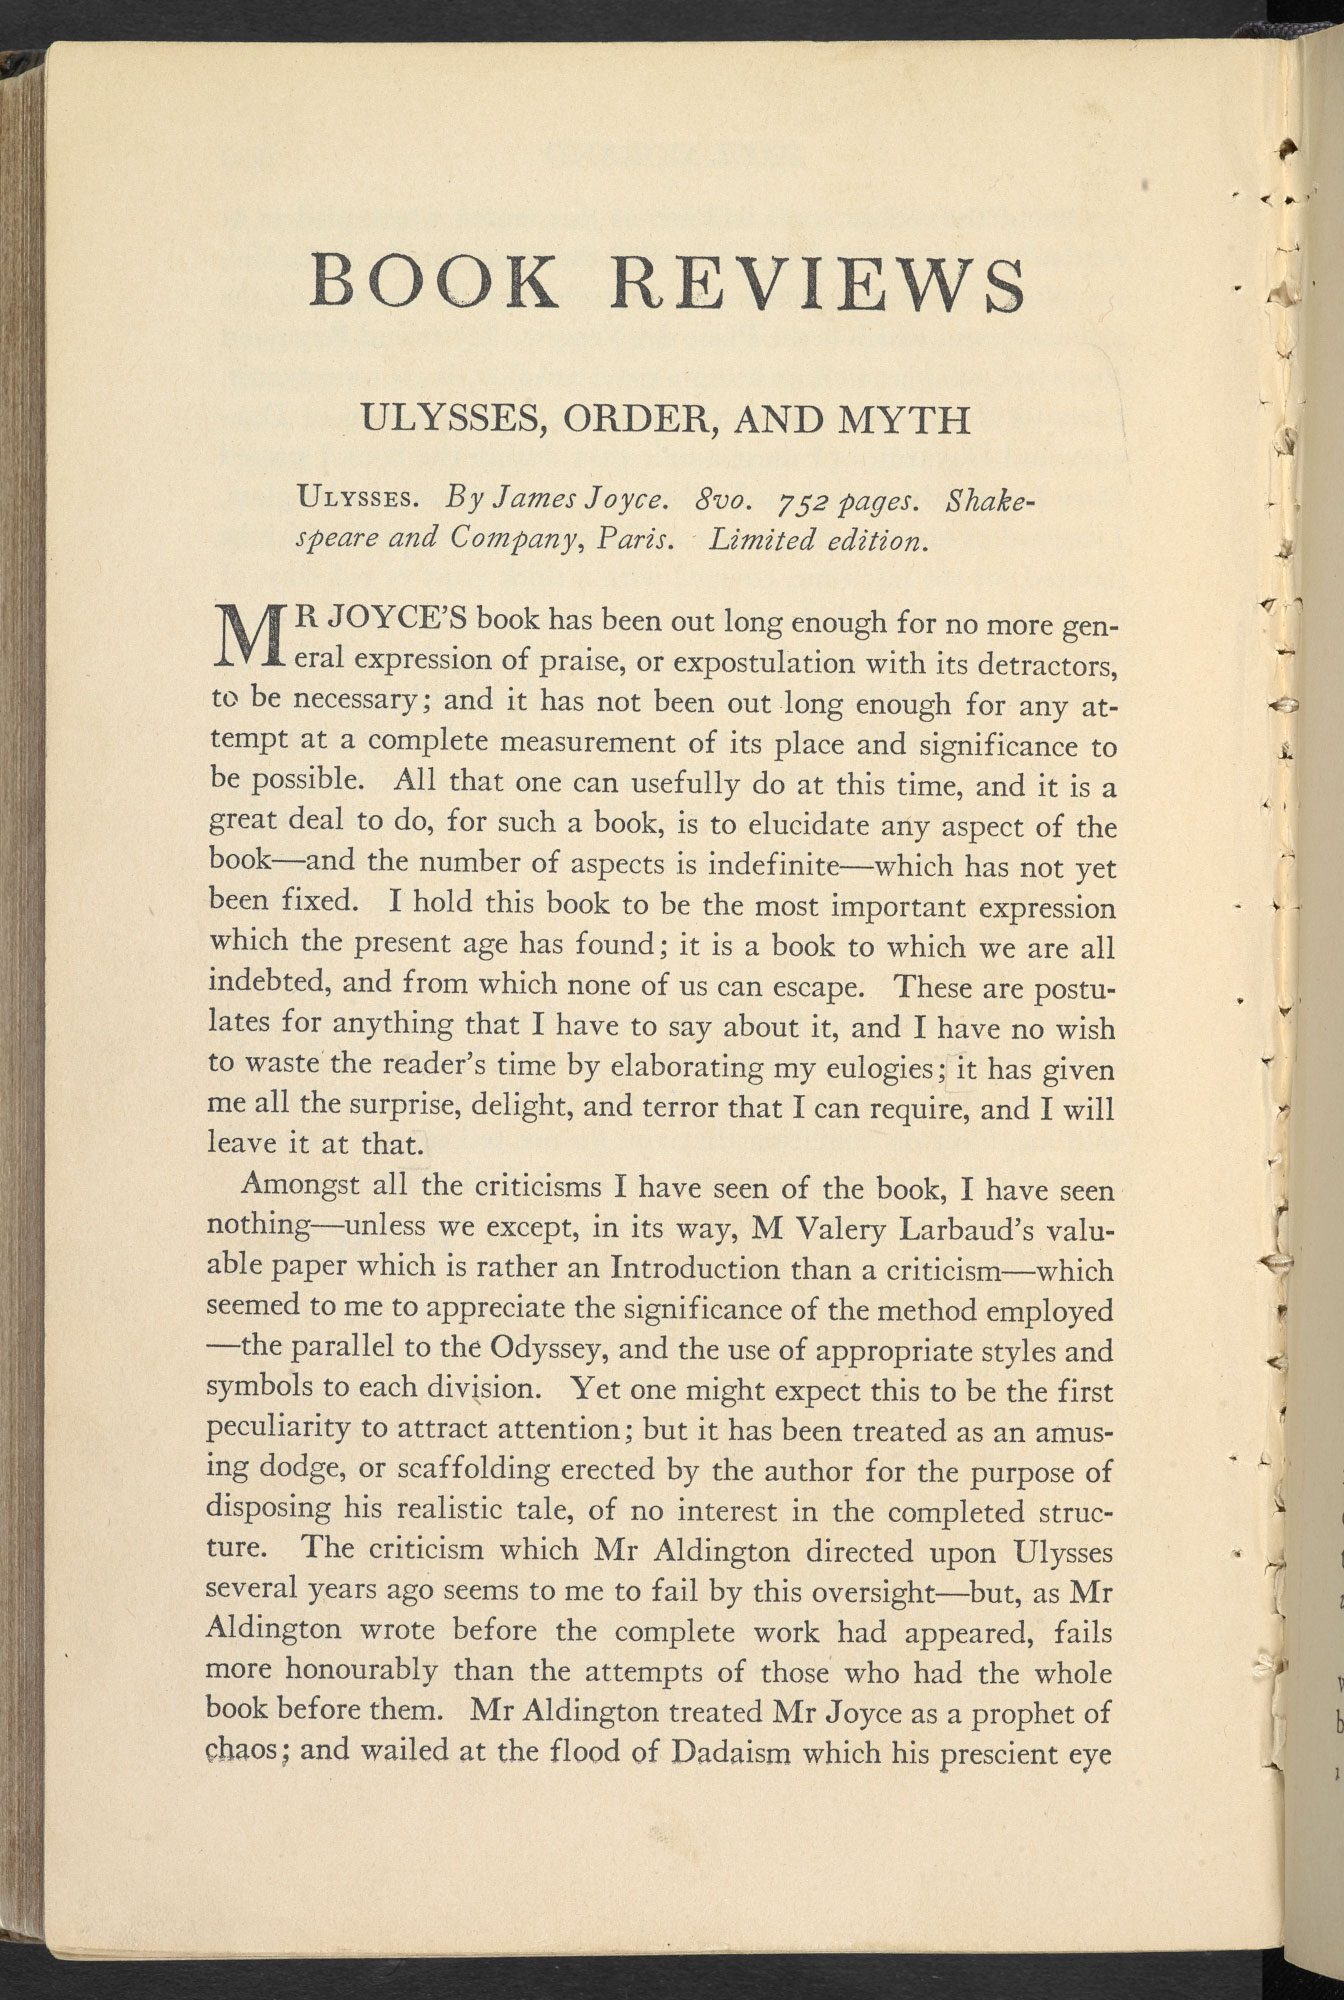 Review of Ulysses by T S Eliot, from The Dial